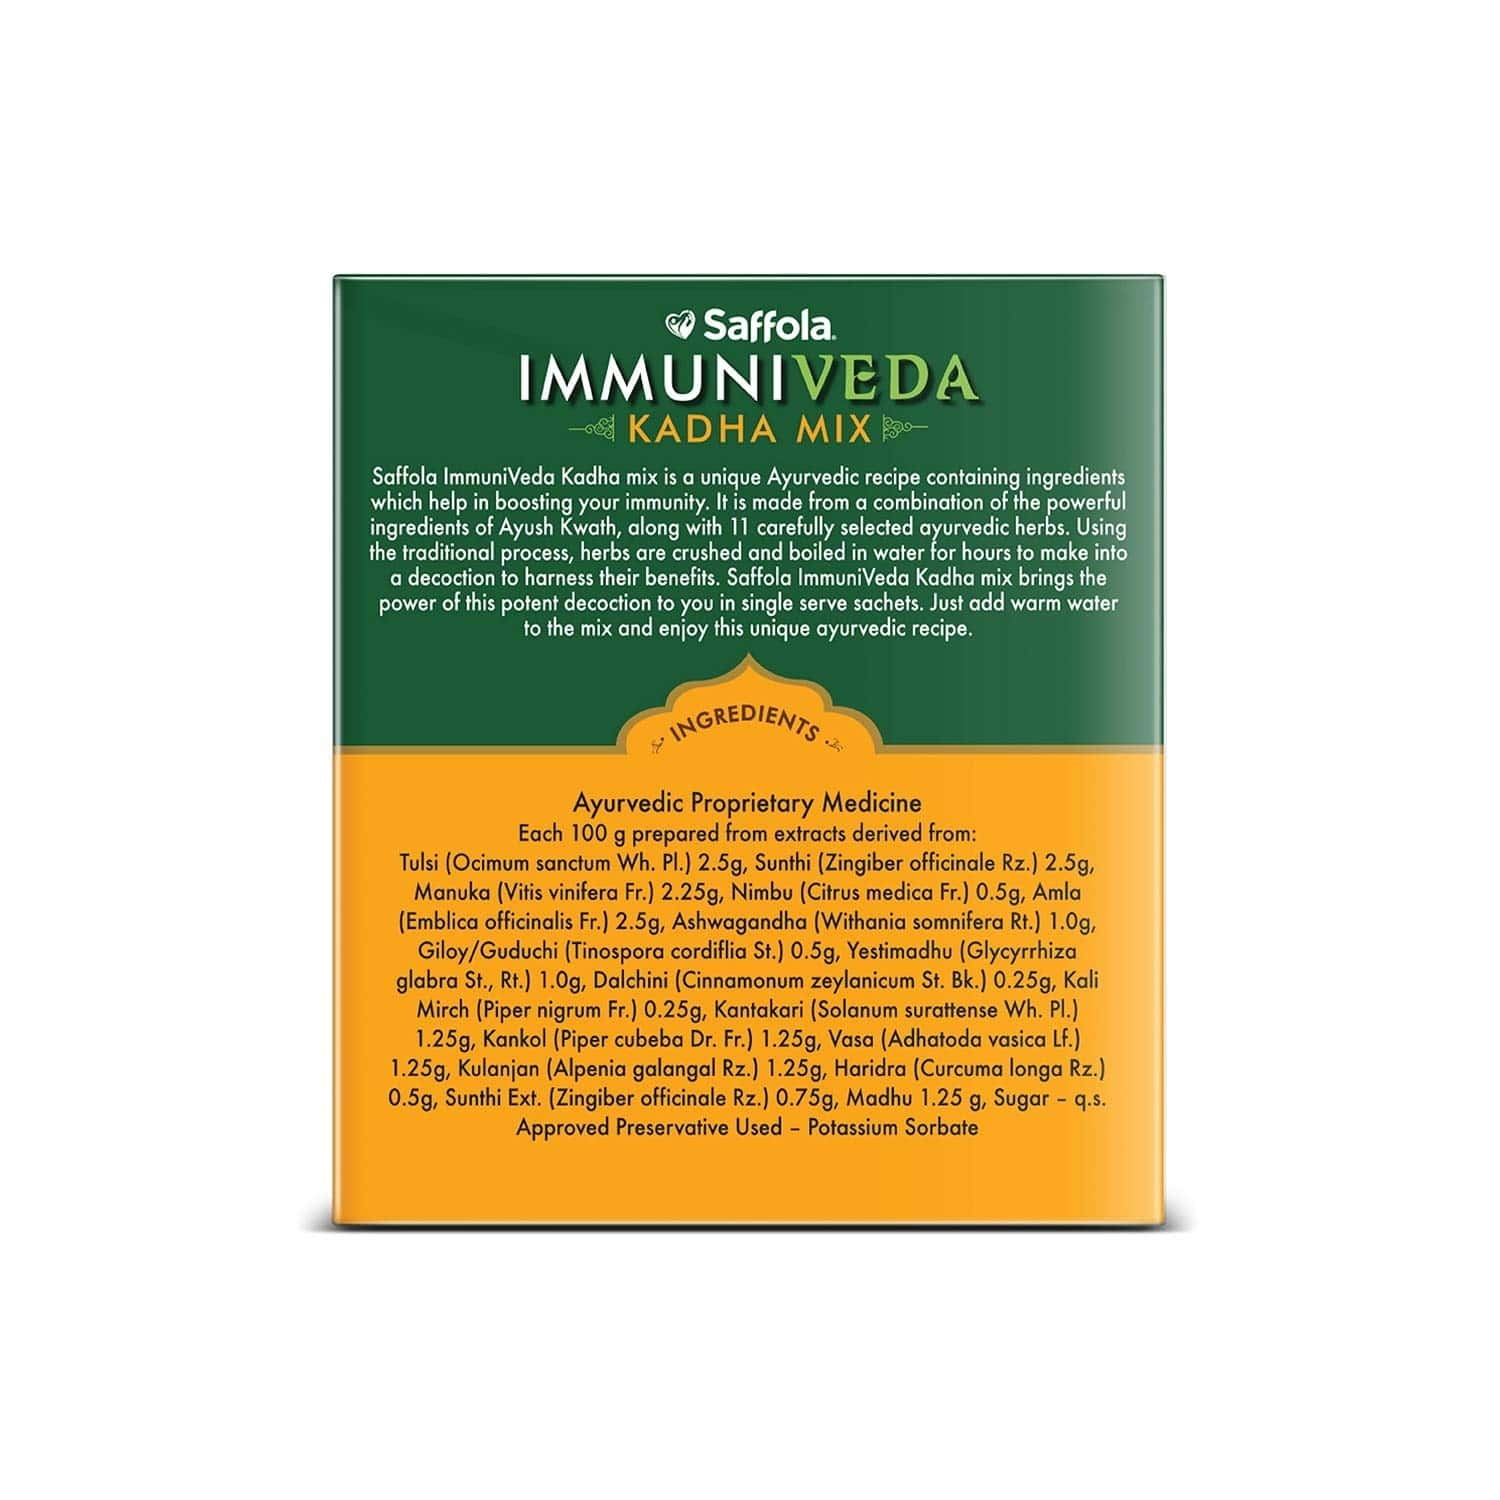 Saffola Immuniveda Kadha Mix Ayurvedic Immunity Booster Herbal Tea- 80g